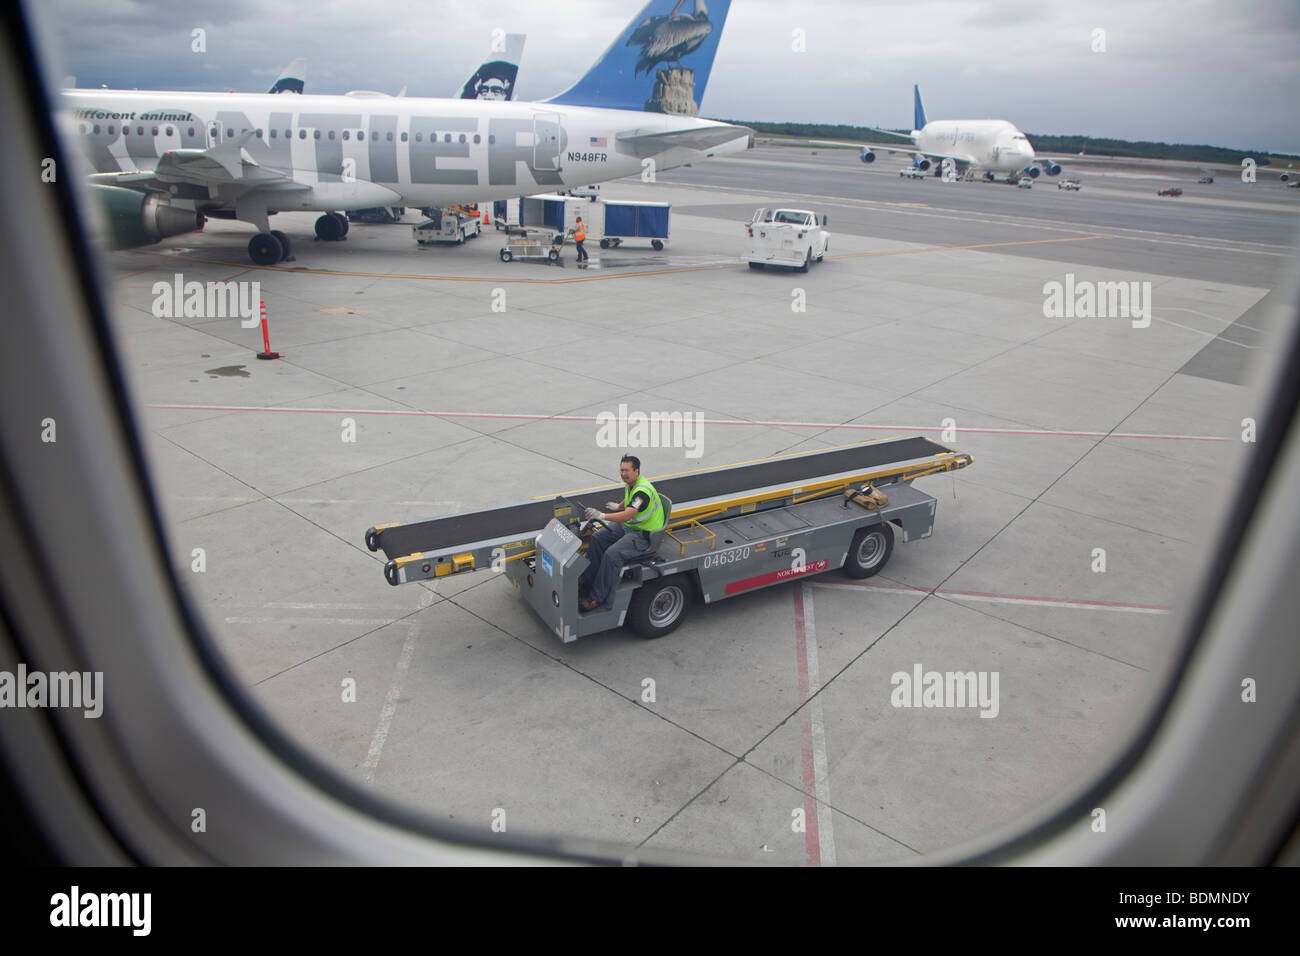 A worker drives a luggage conveyor at Anchorage International Airport - Stock Image